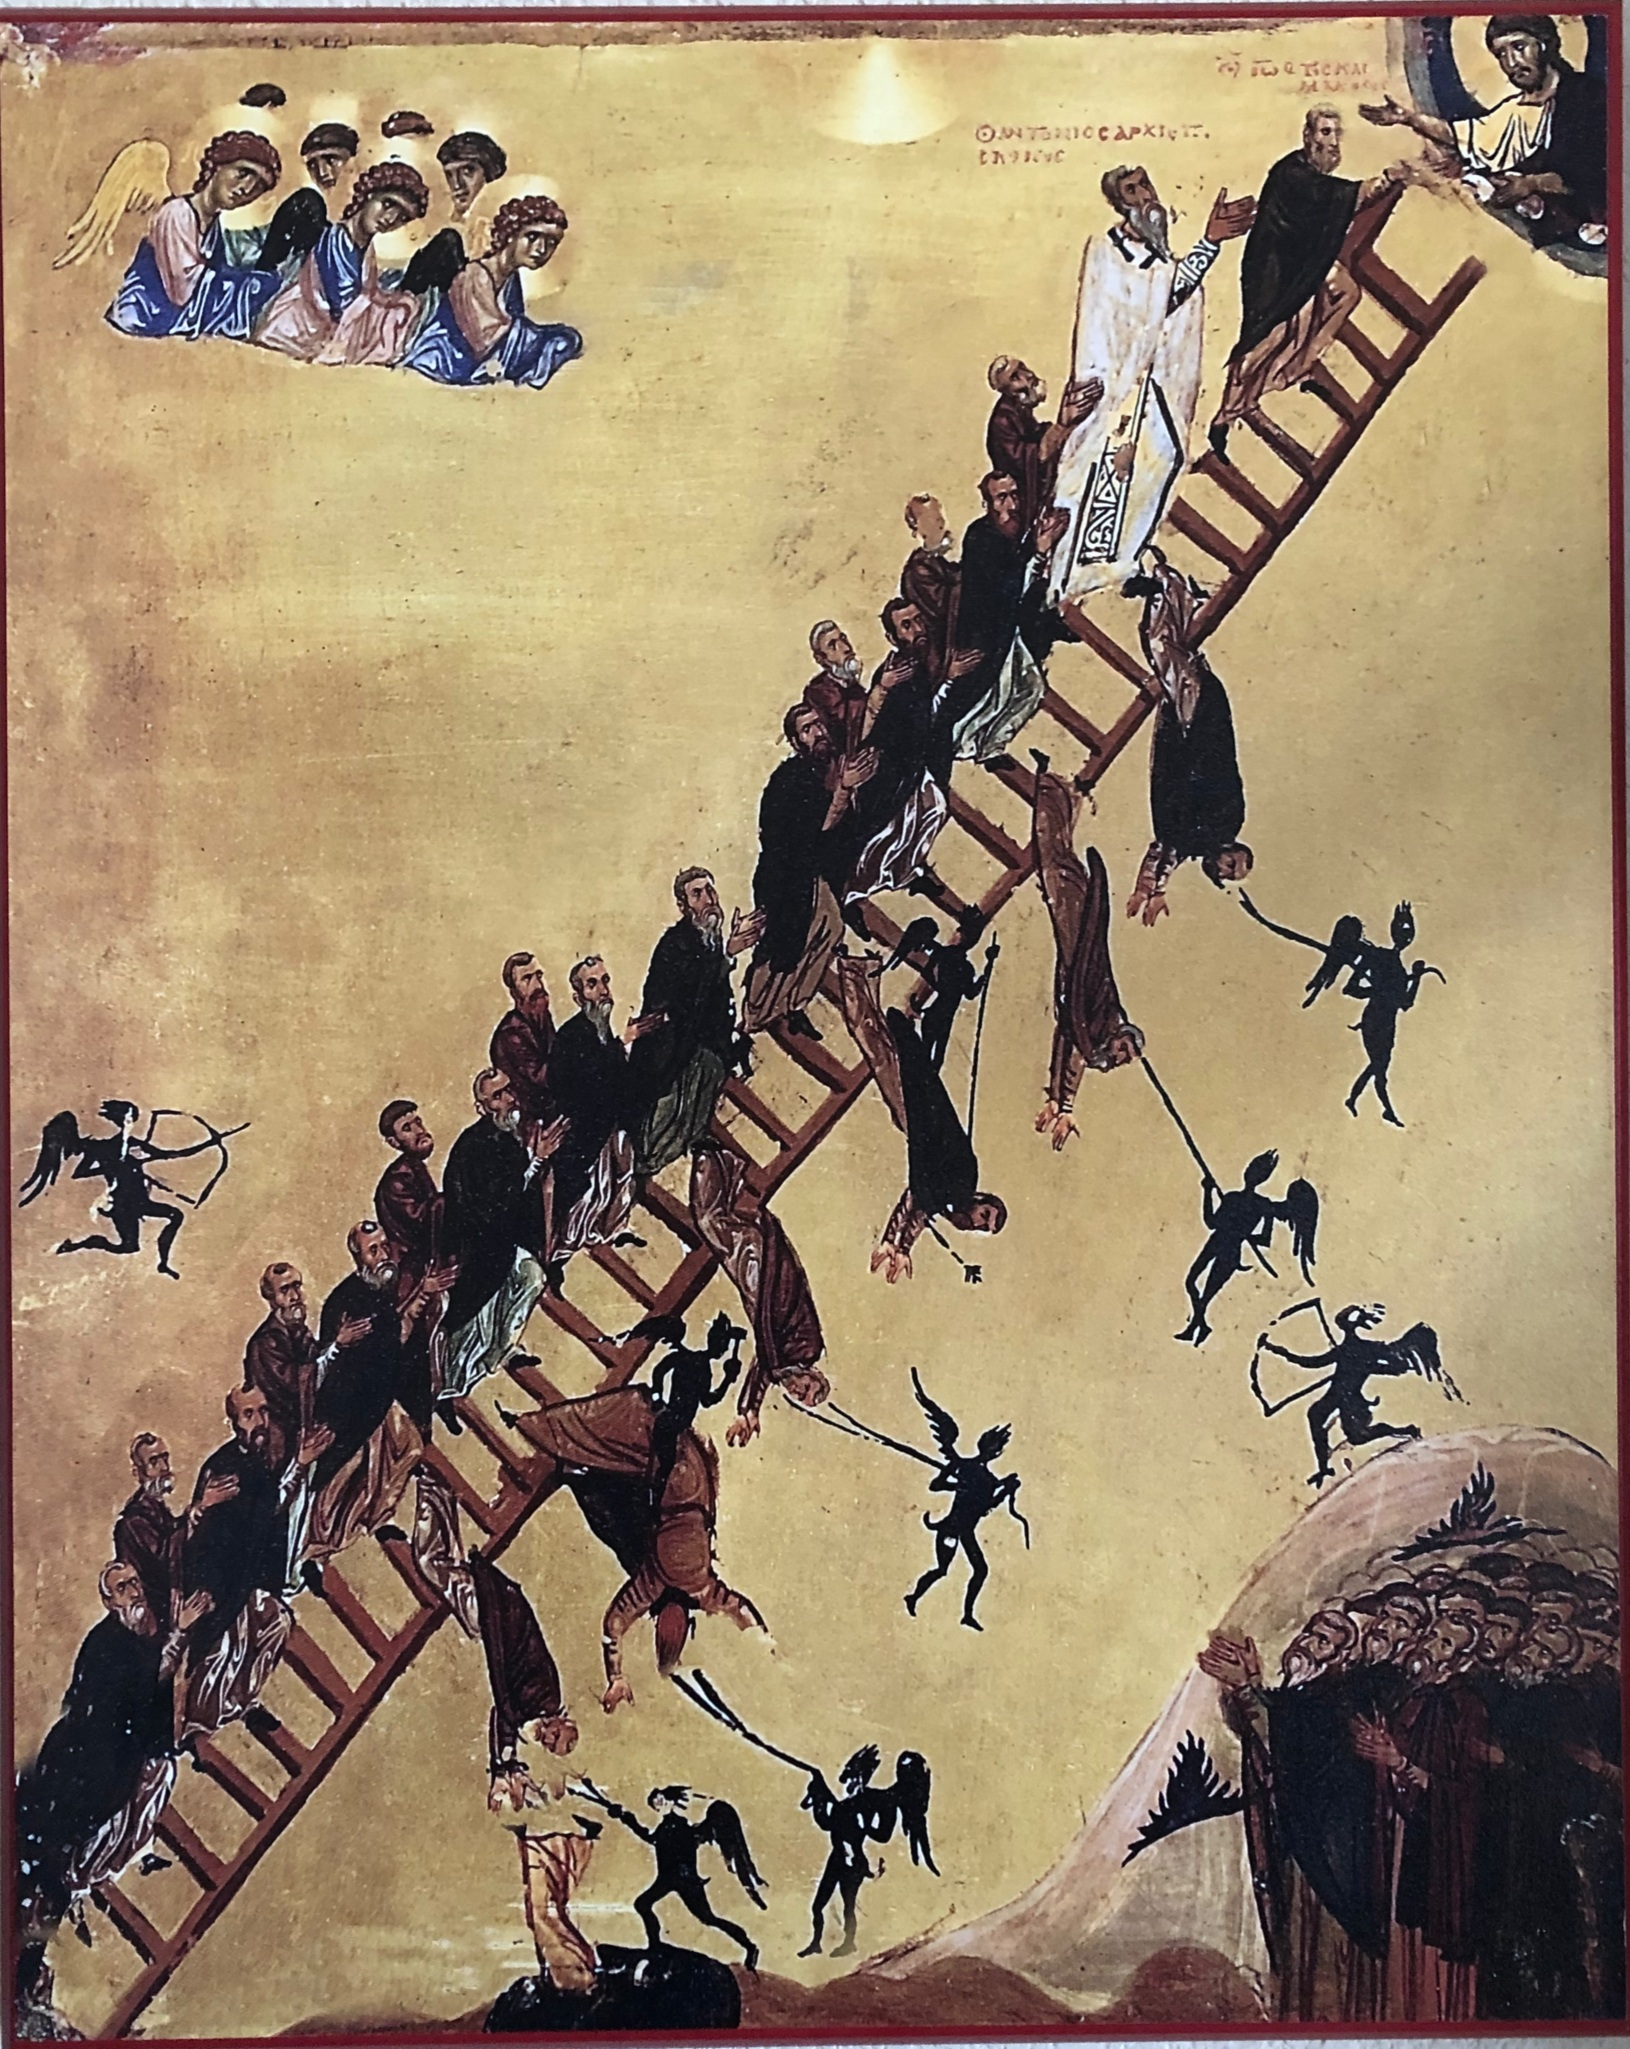 more on the ladder - At Christian Martial Fitness, we use the image of a ladder to explain our philosophy. The ladder begins with our earthly bodies and points towards our transfigured heavenly bodies. The outer rails represent our free will on one side and God's will on the other. The rungs (or steps) connect our will with God's, and in our philosophy, martial fitness successfully does just this. God has called us to serve the world by teaching how you can find the peace and joy that only God can give through climbing the Christian Martial Fitness ladders.